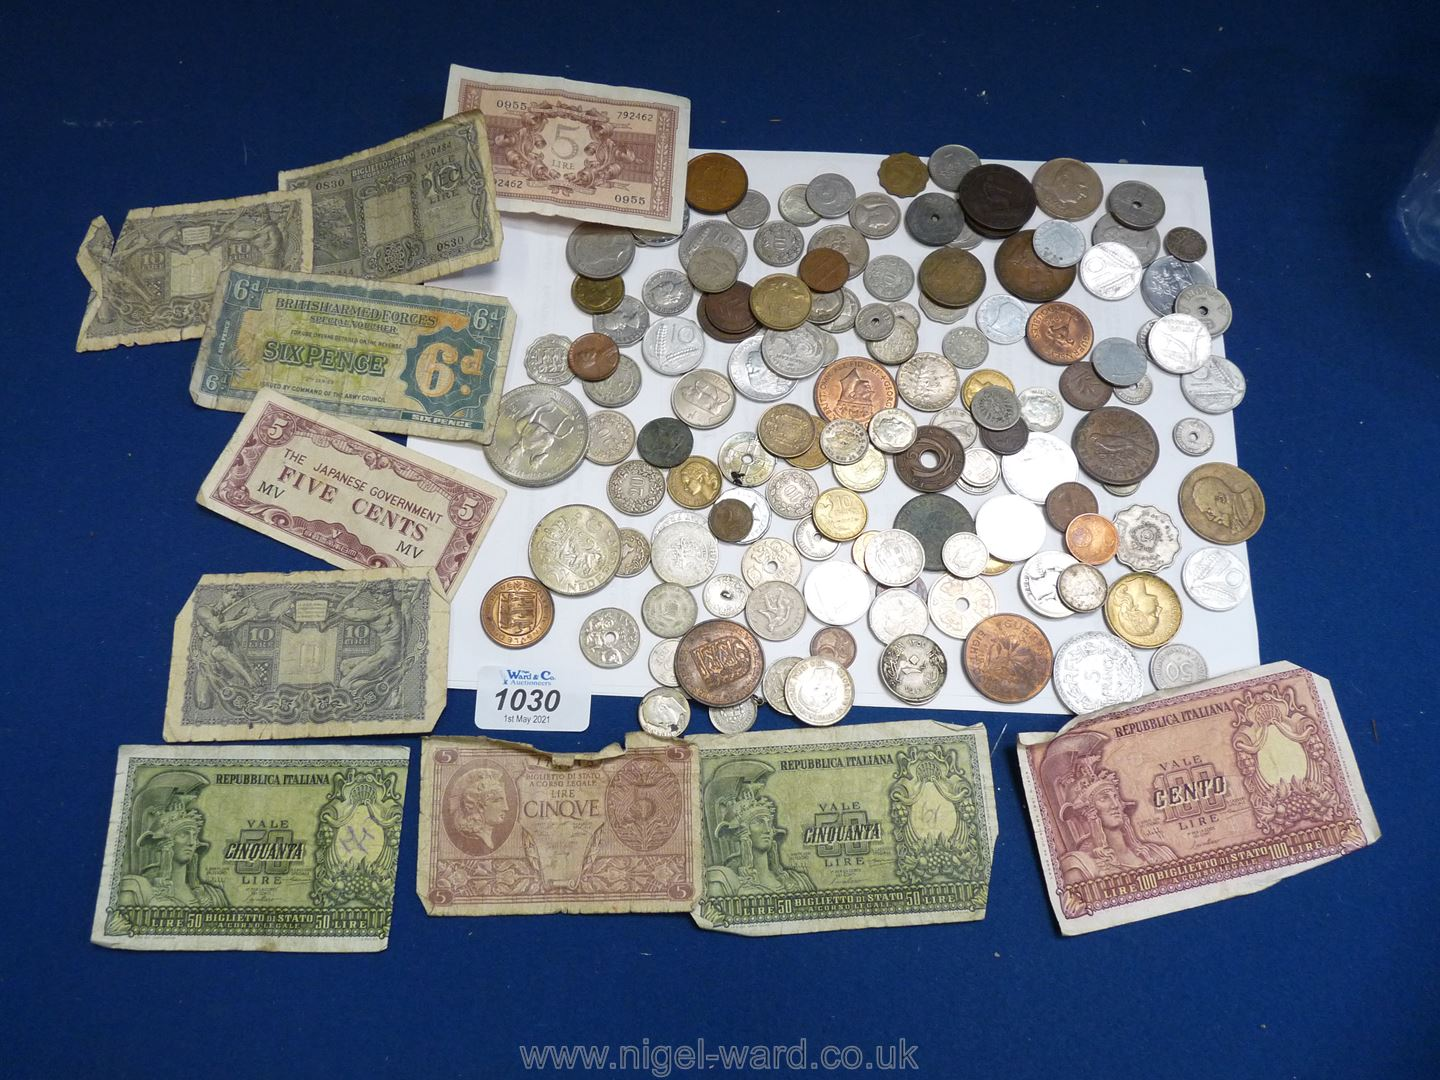 A quantity of foreign coins and Italian notes including lire,